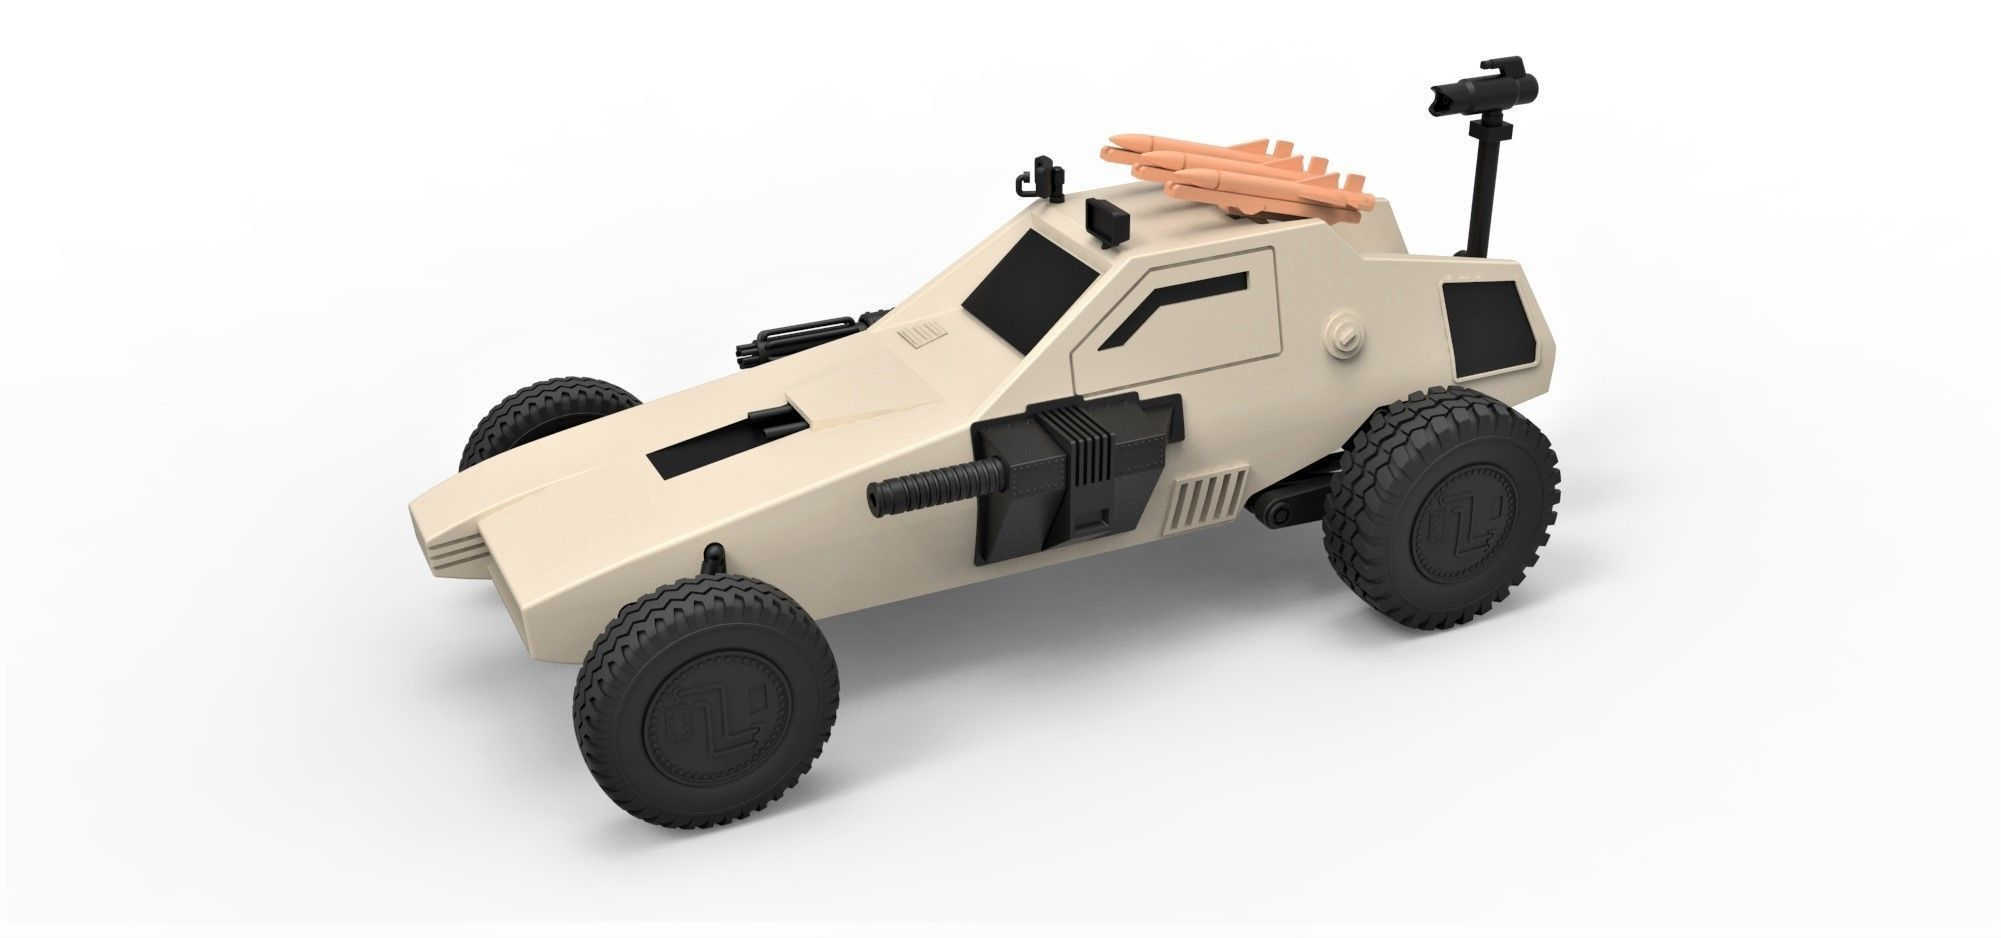 Diecast model Dune buggy from movie Megaforce 1982 Scale 1 to 24 | 3D Print  Model